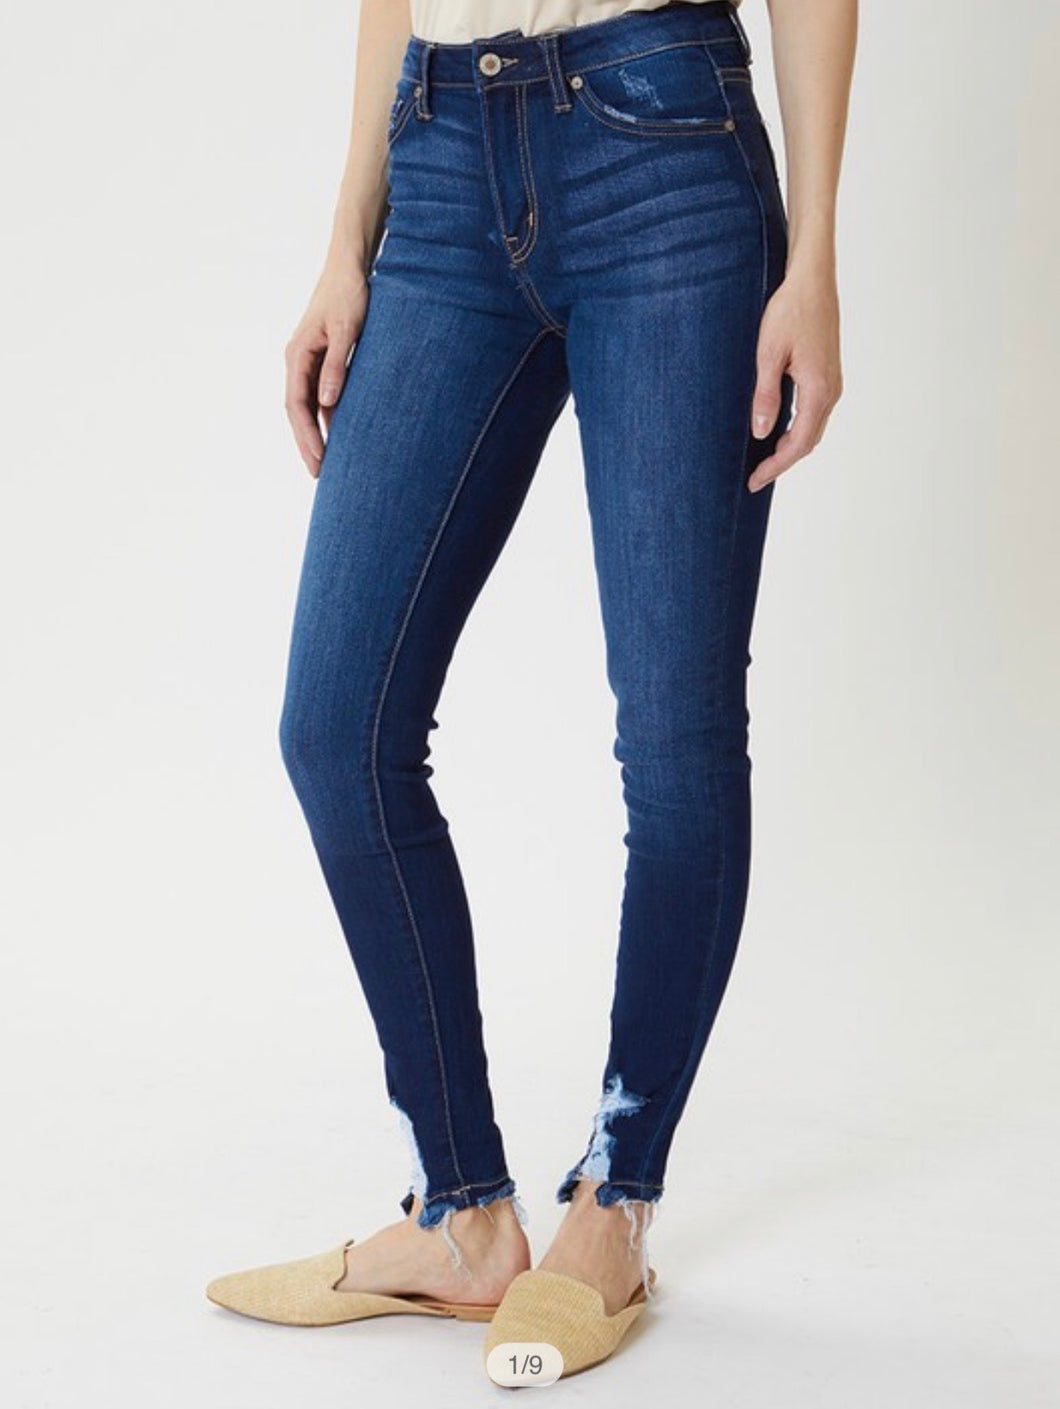 Super Skinny Bottom Distress Detail - KanCans - High Rise